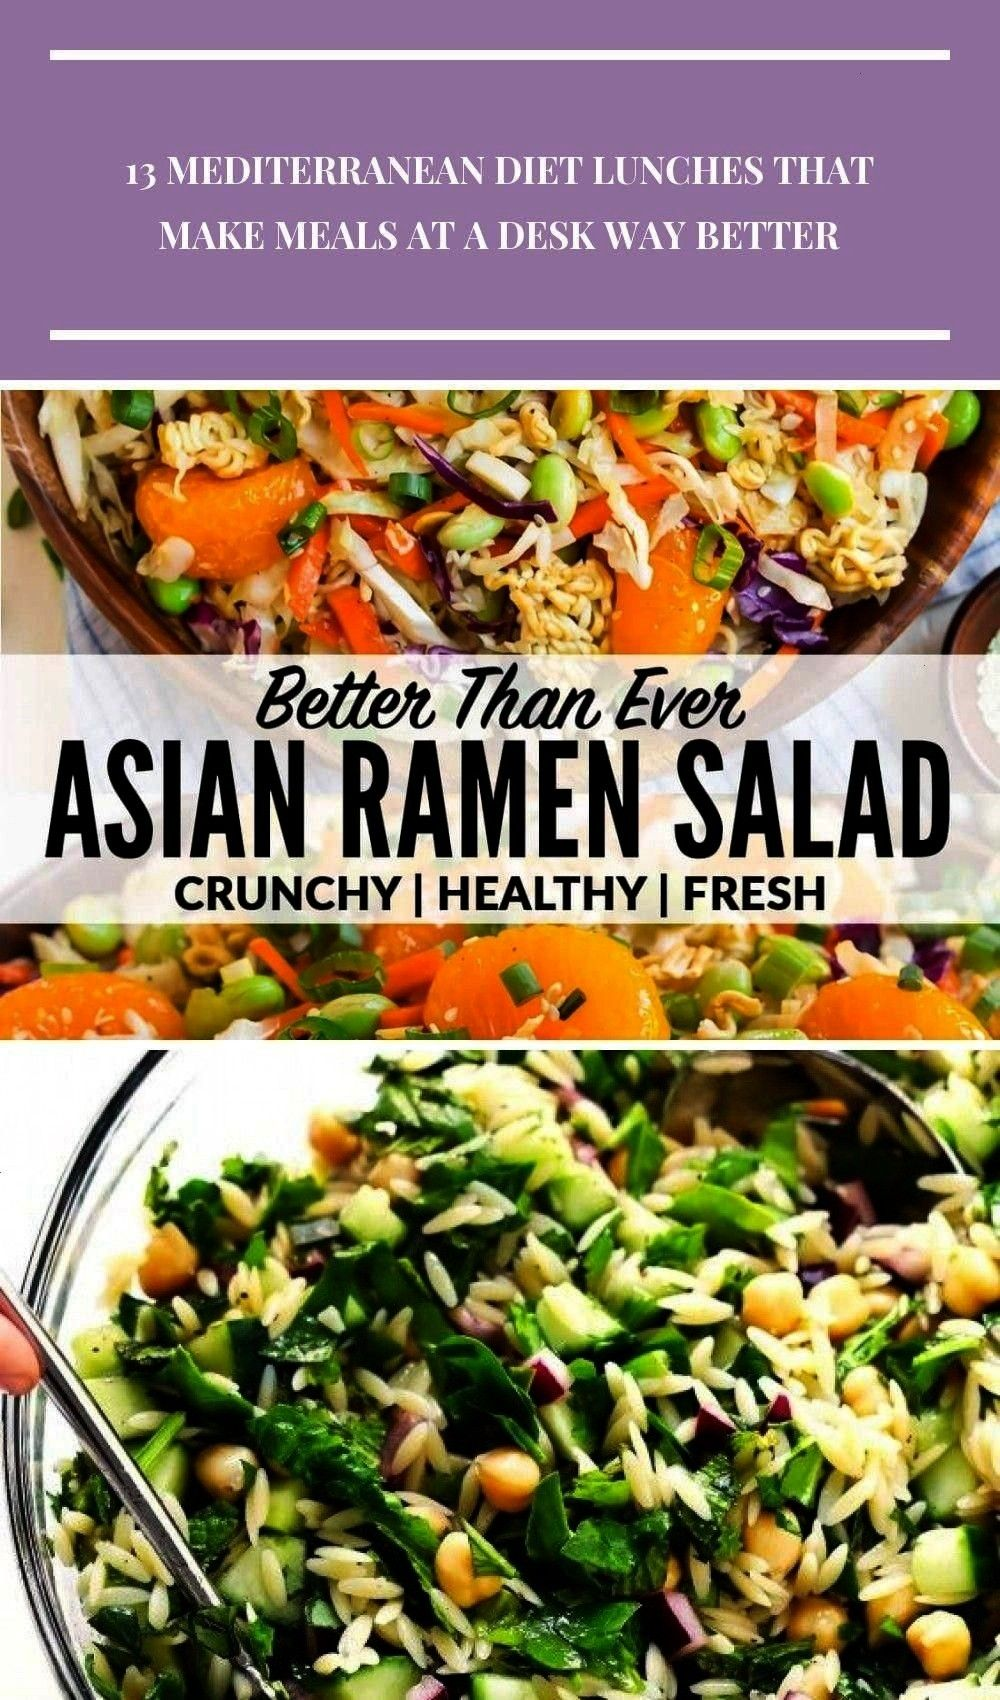 HEALTHY version of the ridiculously amazing Asian ramen salad made with ...  - Salad -A fresh HEALT